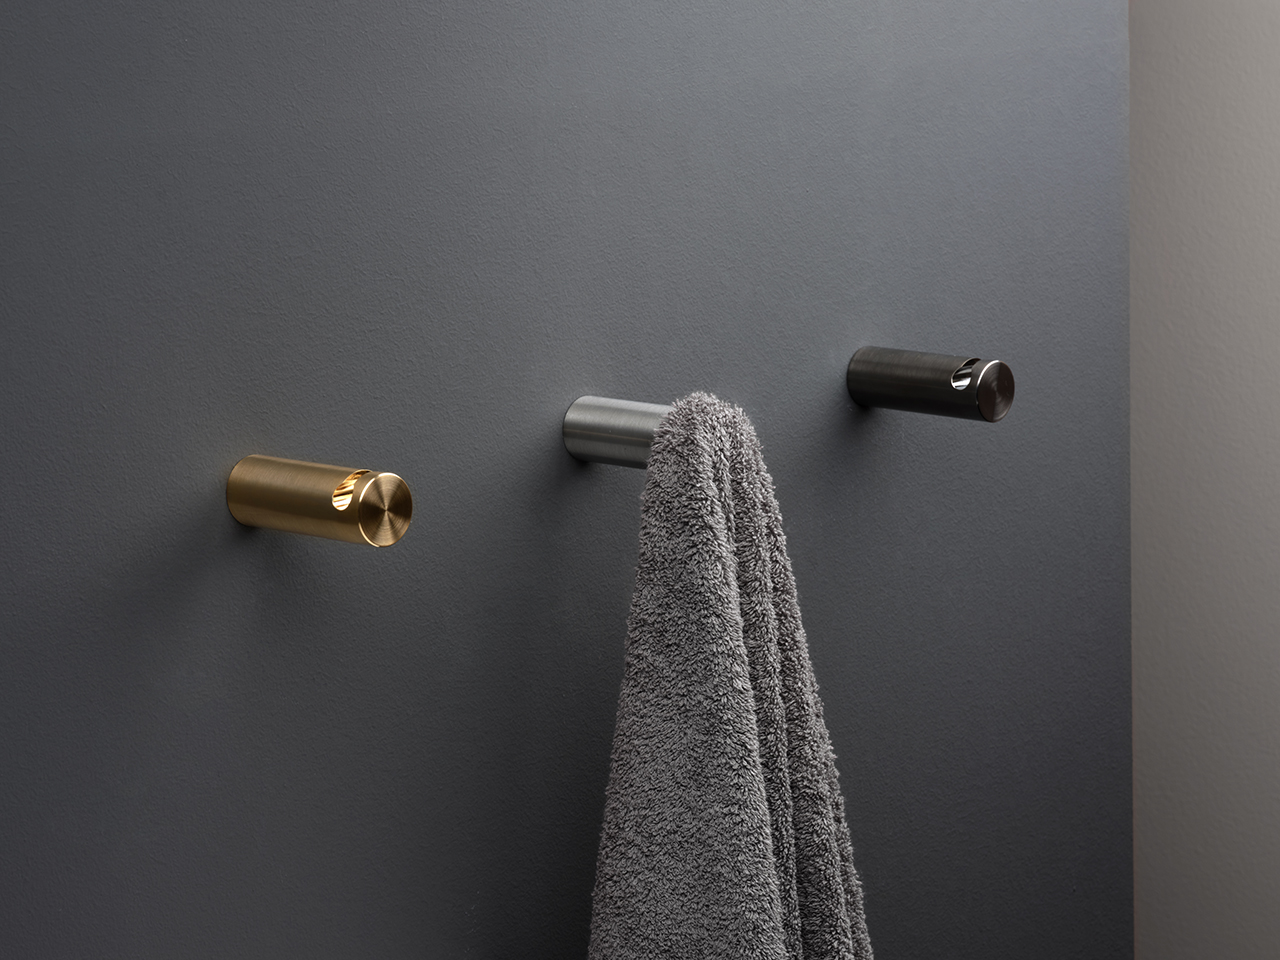 three modern towel hooks mounted to black wall with towel